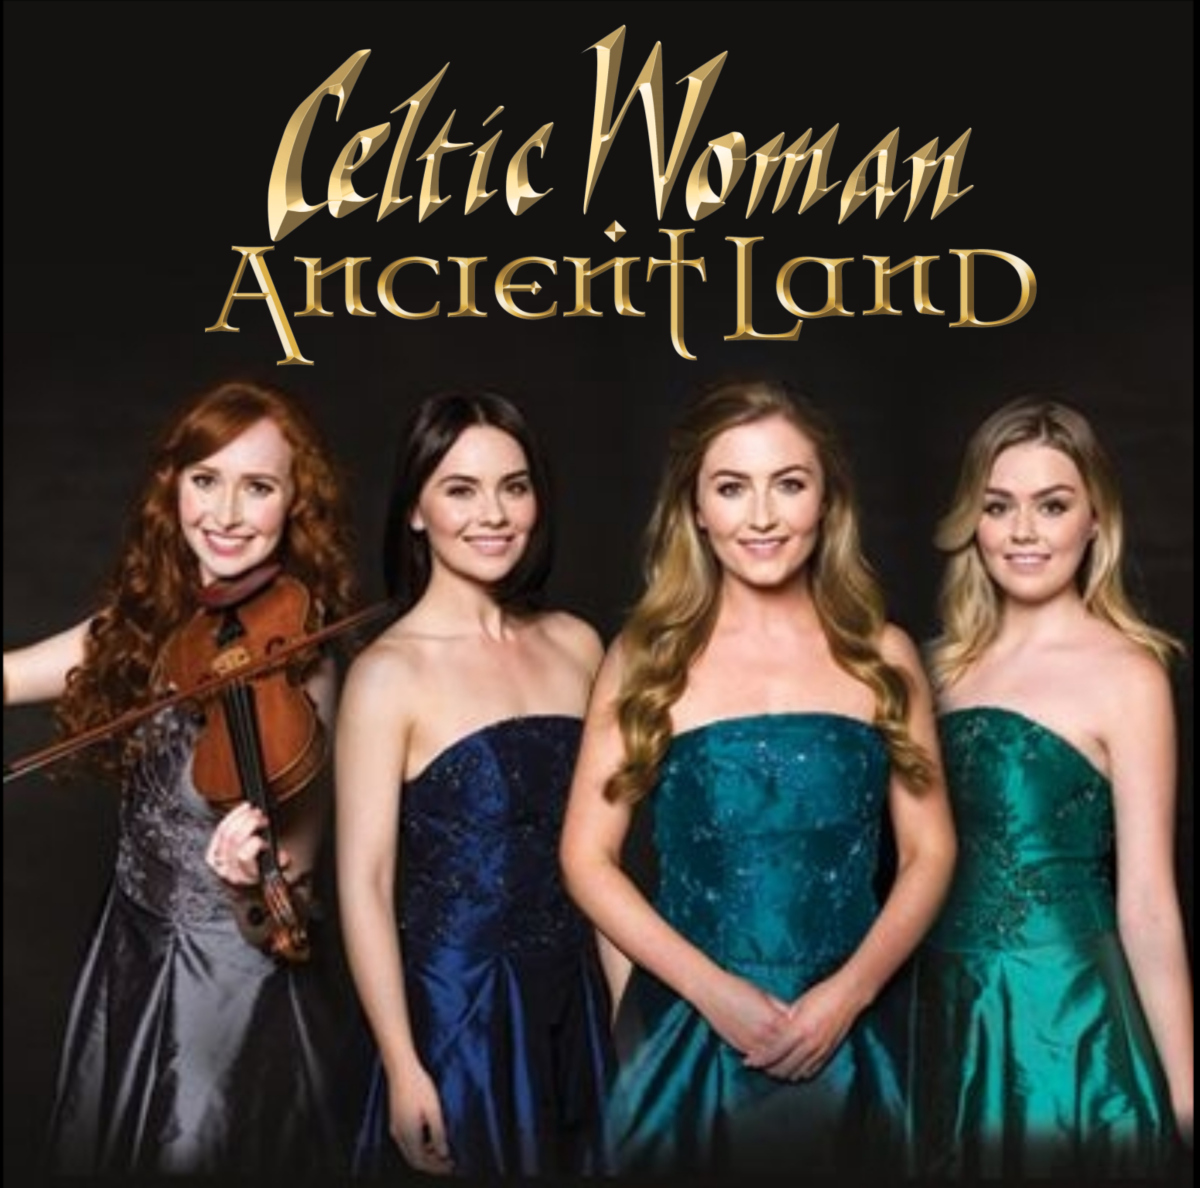 Image for CELTIC WOMAN